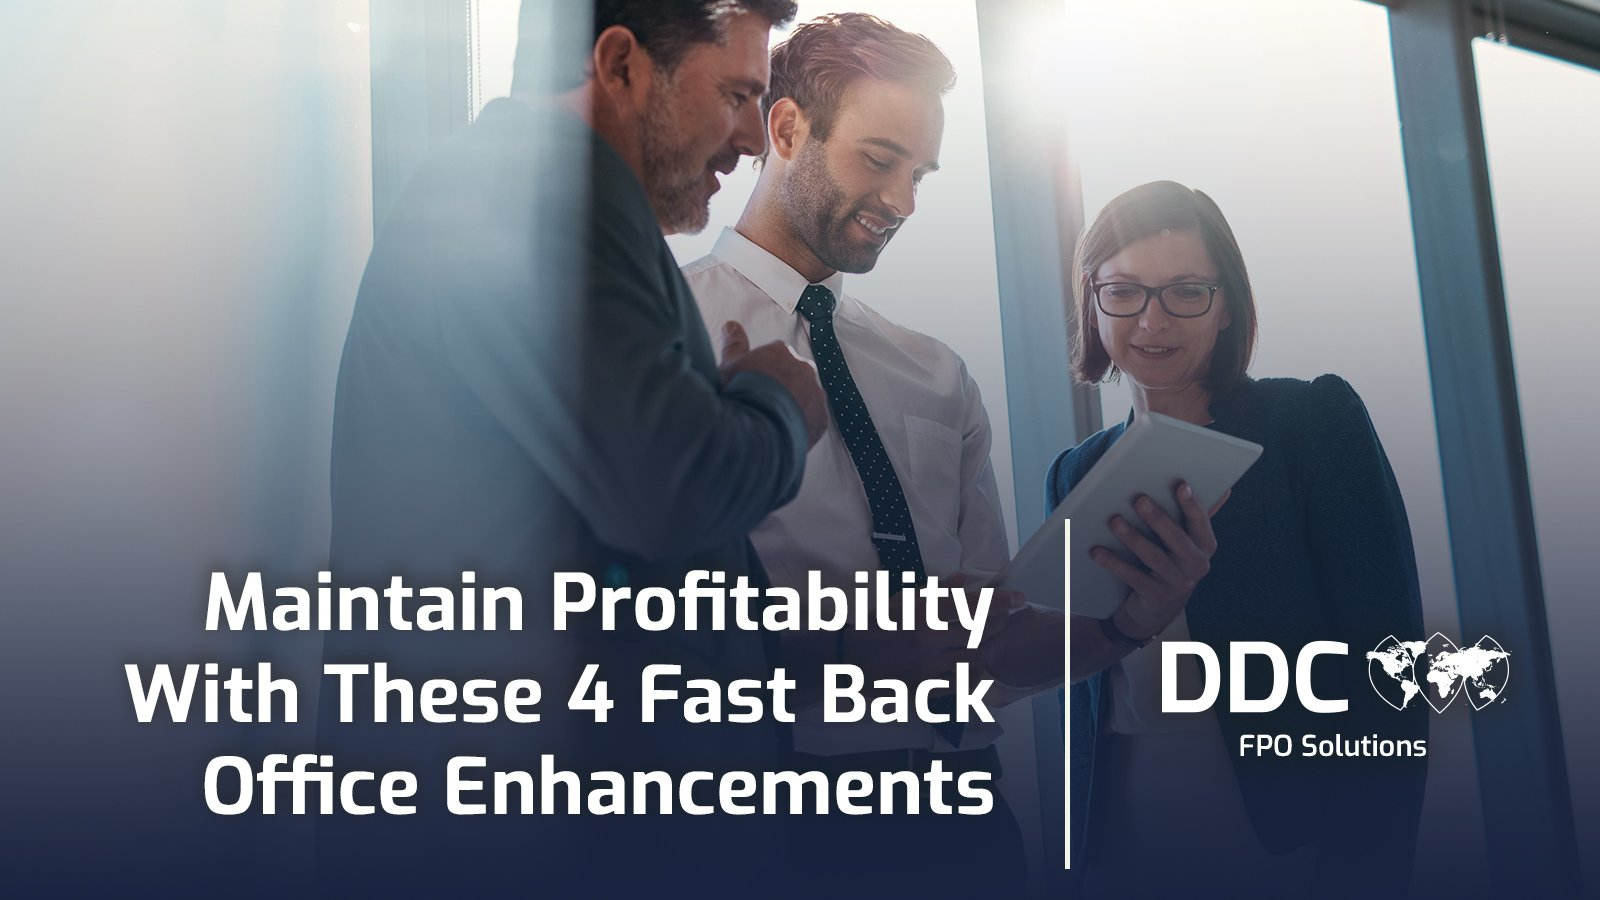 Maintain Profitability With These 4 Fast Back Office Enhancements